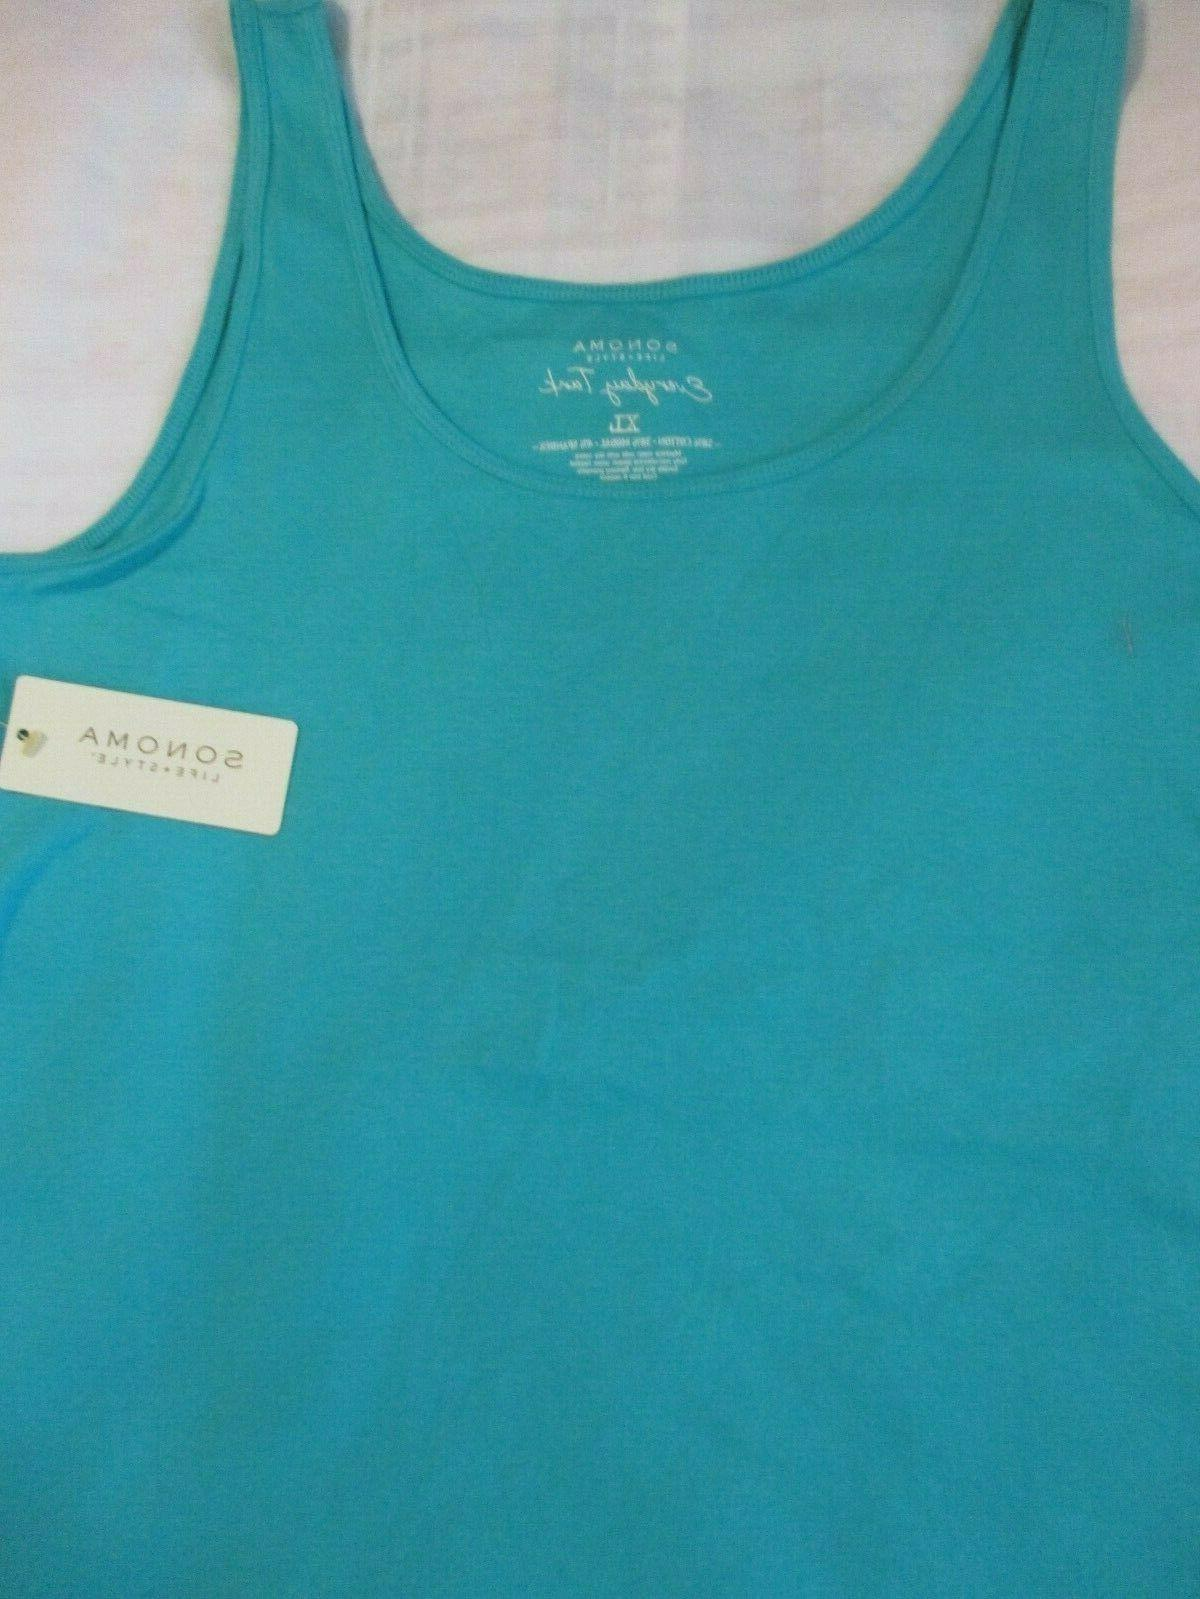 WOMENS SONOMA EXTRA LARGE XL TOP SOLID